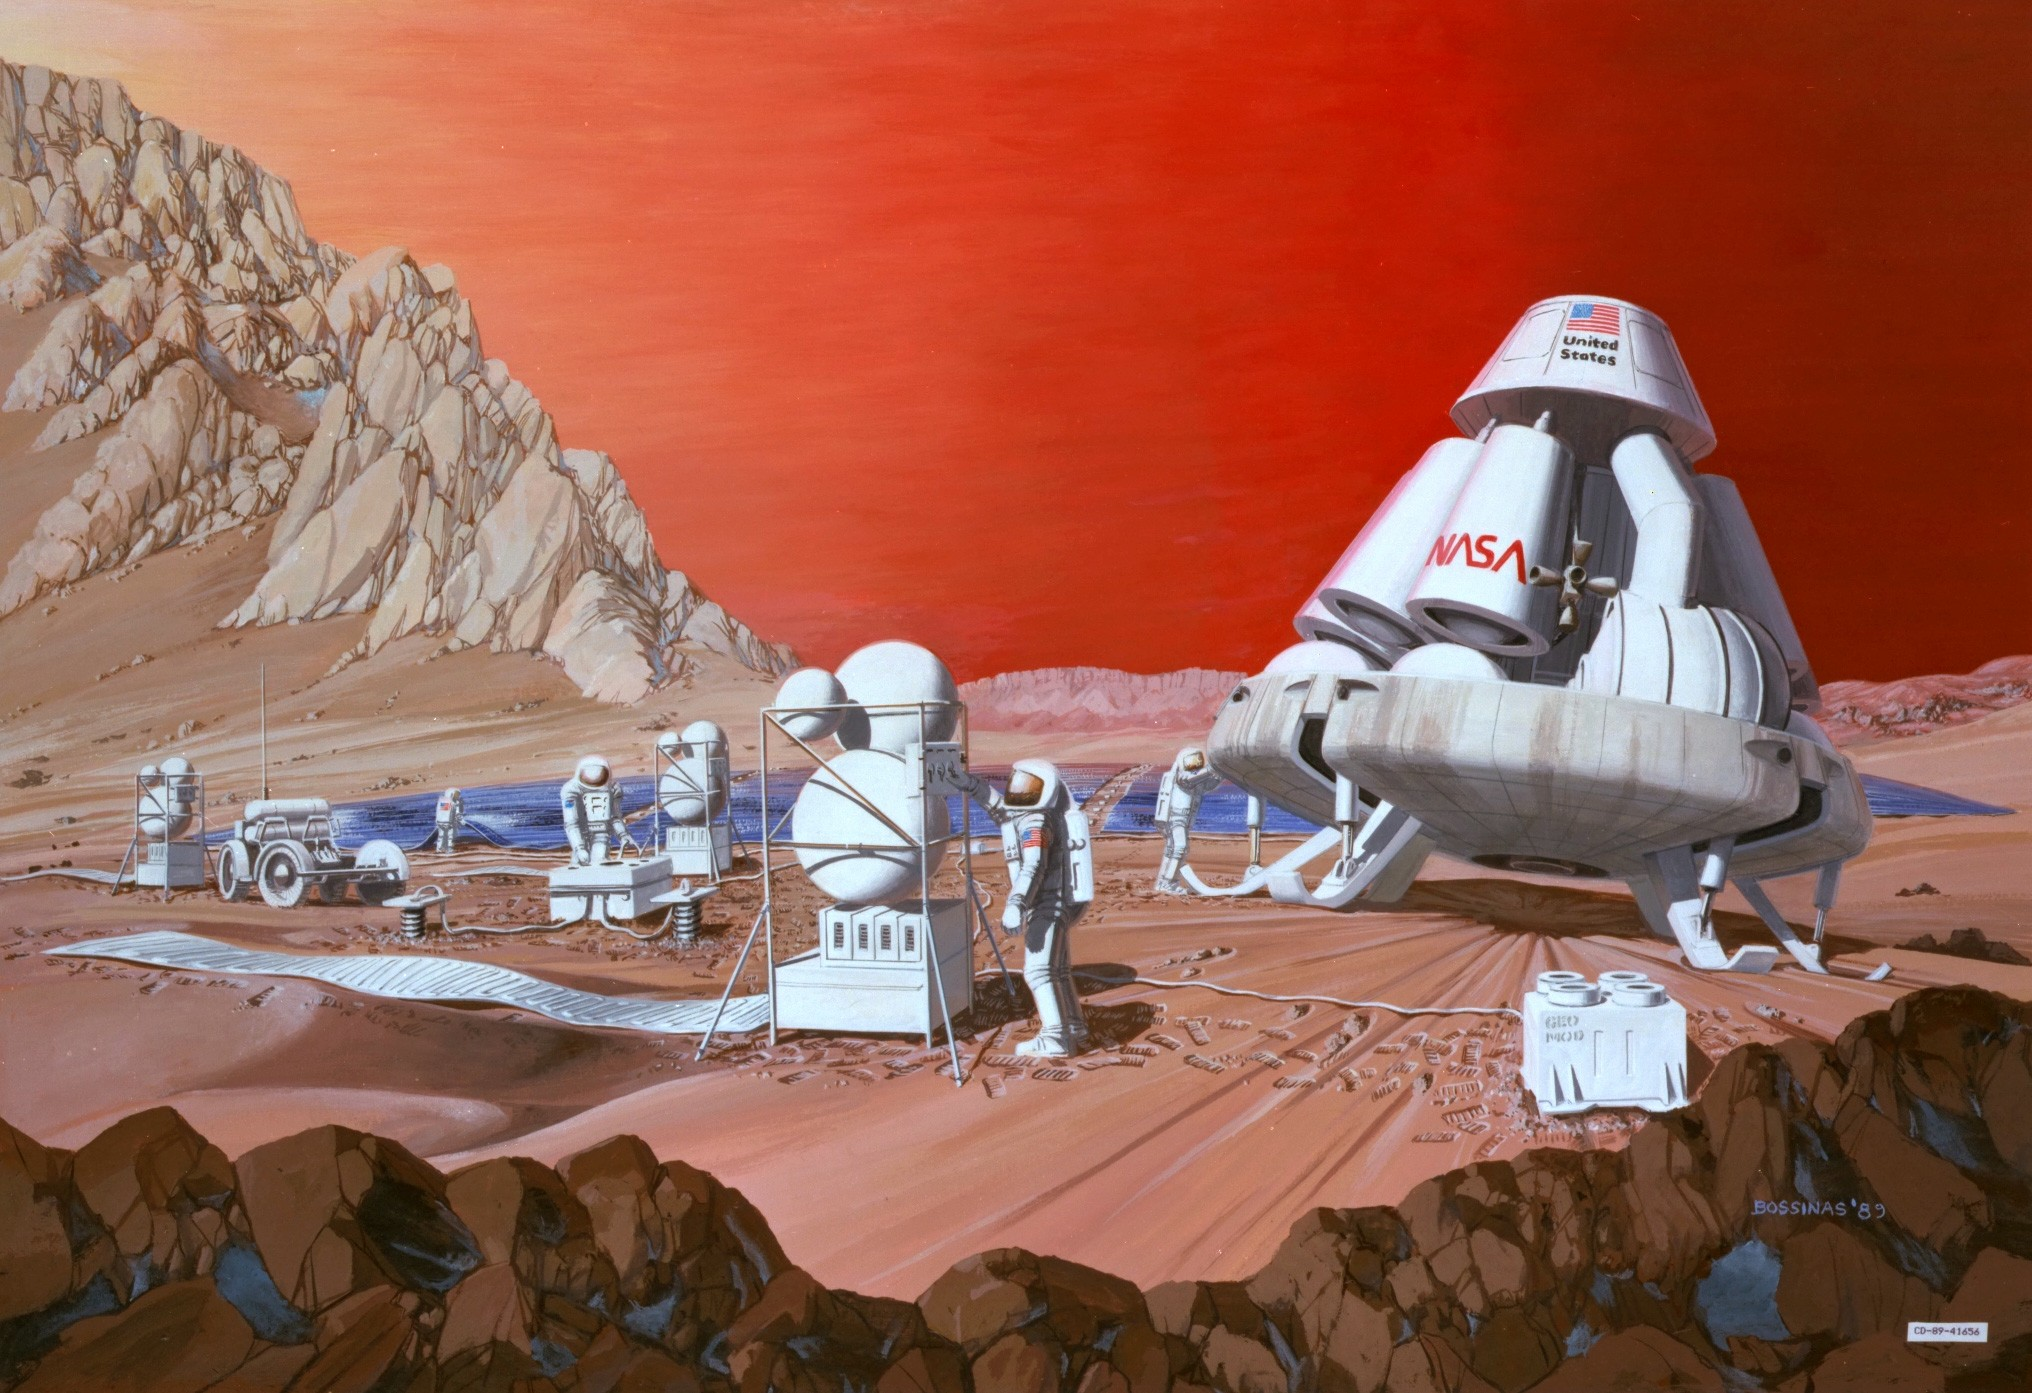 Mars mission - Retro Gallery Archive (Full Size)